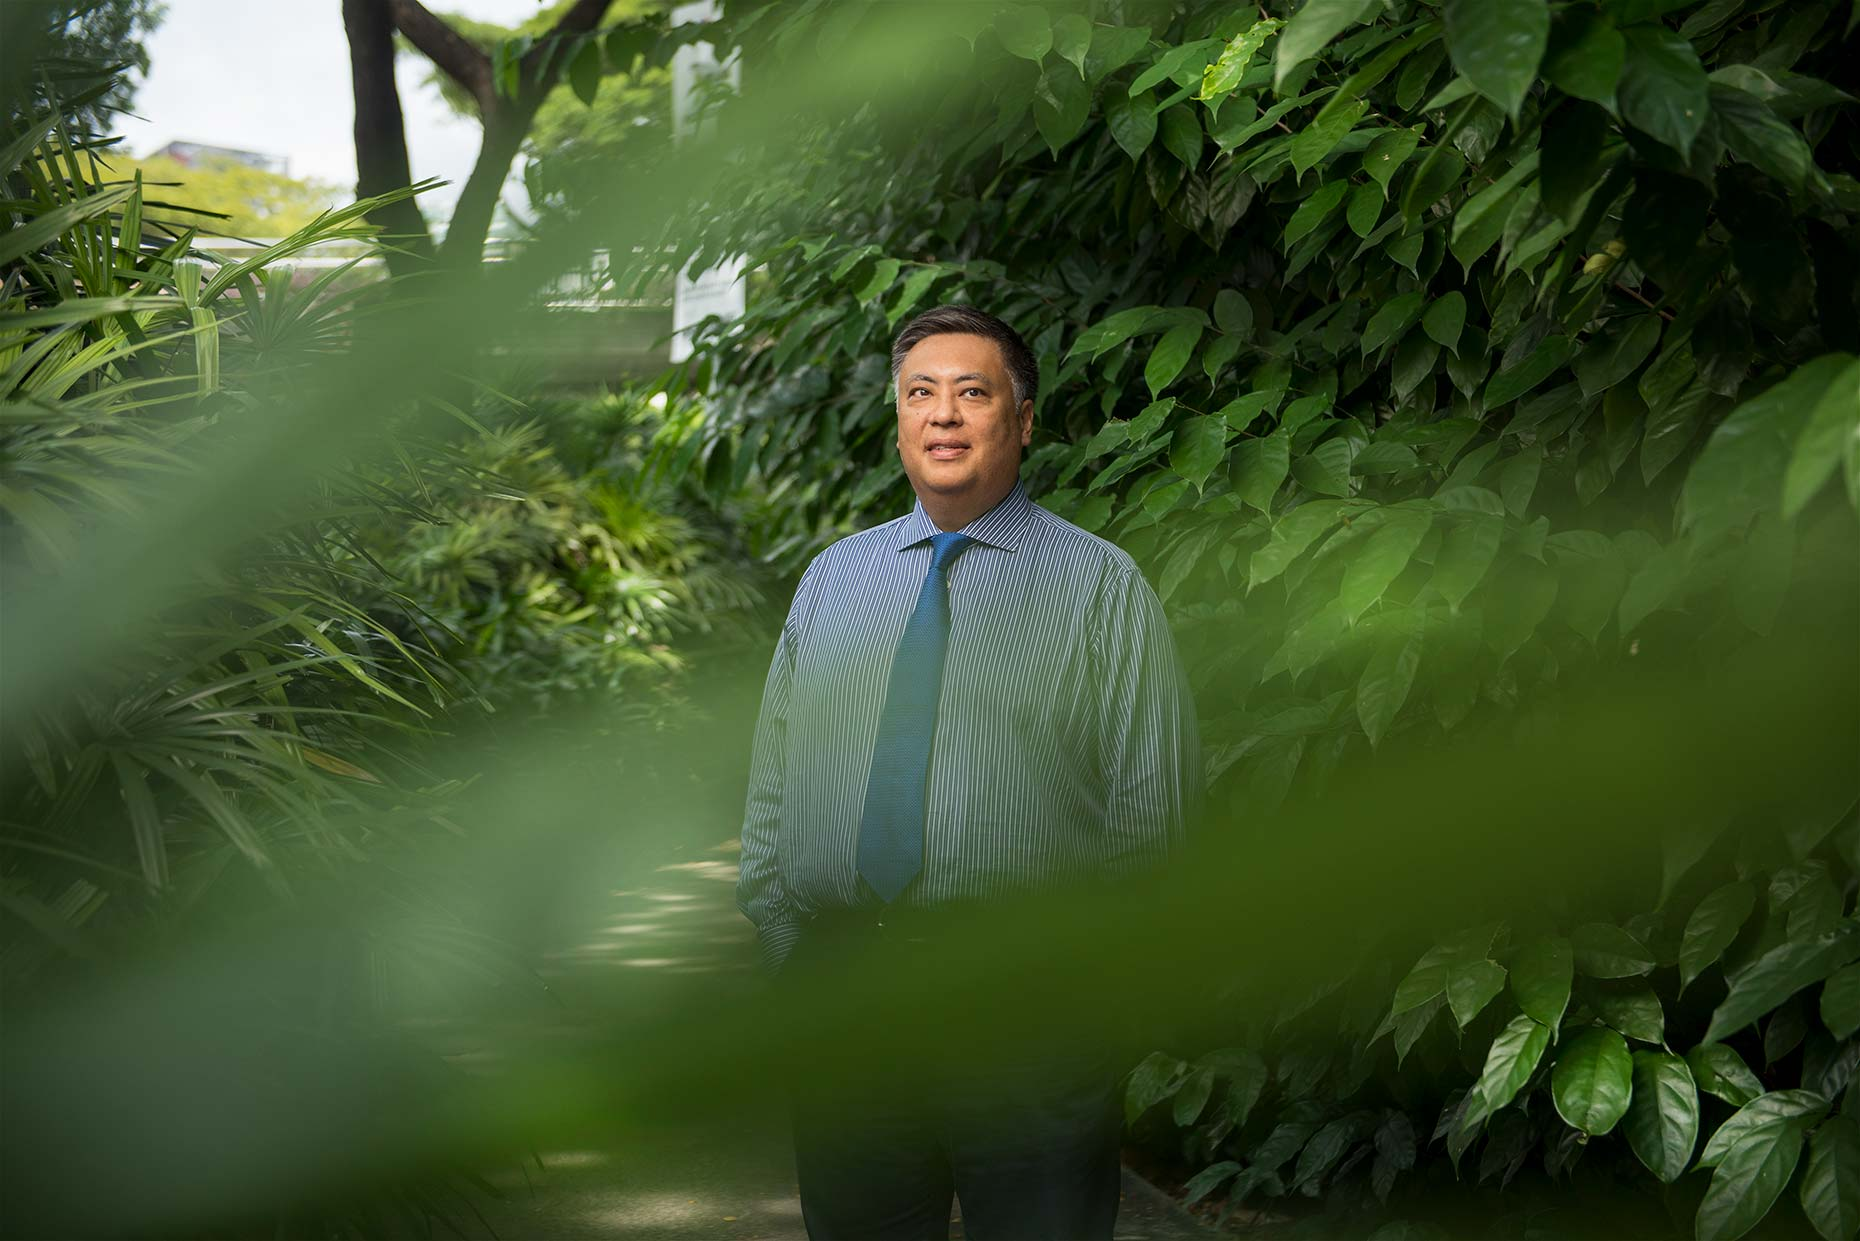 Ken Siazon, Longleaf Partners Singapore by photographer Stefen Chow | Portrait Photography | Outdoors | Greenery | Singapore | Asia